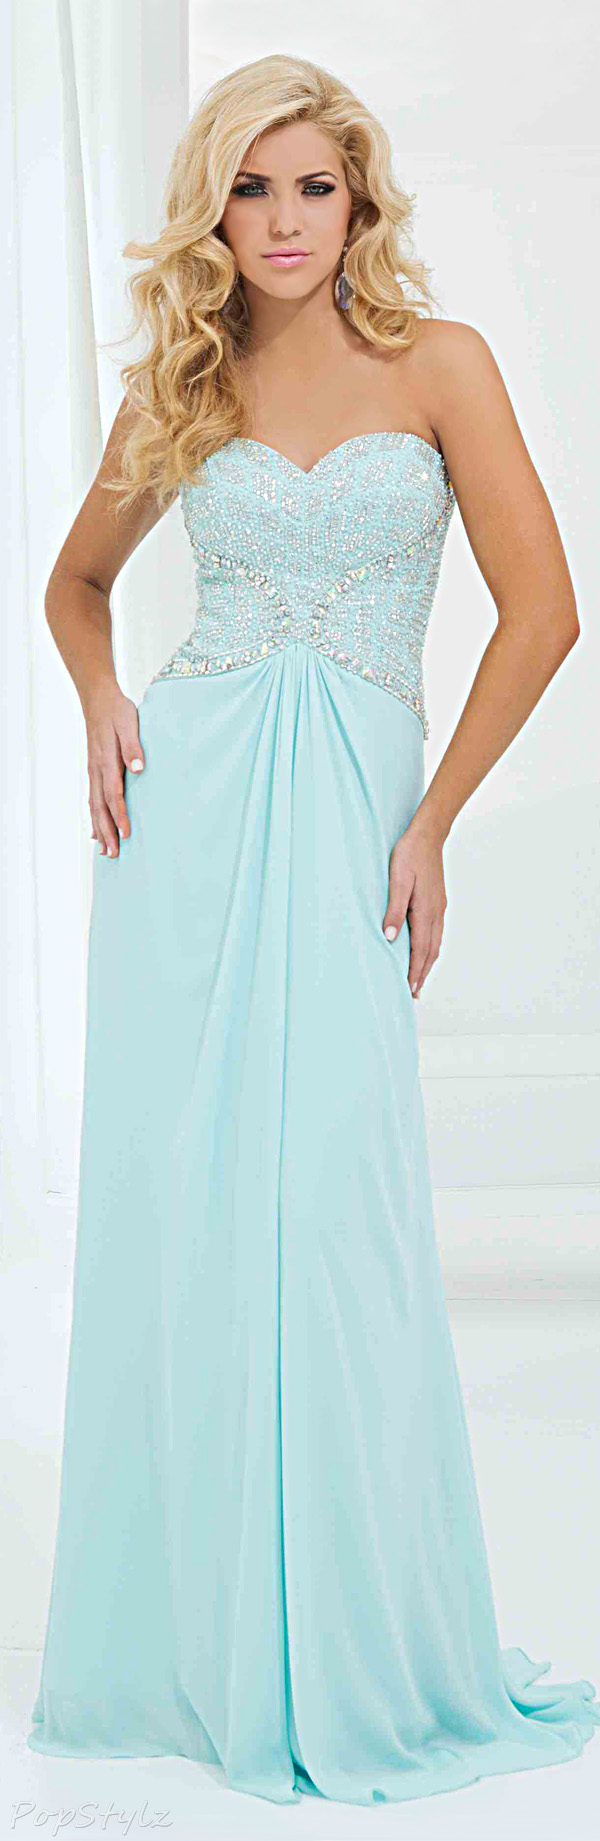 Tony Bowls TBE11407 Evening Gown